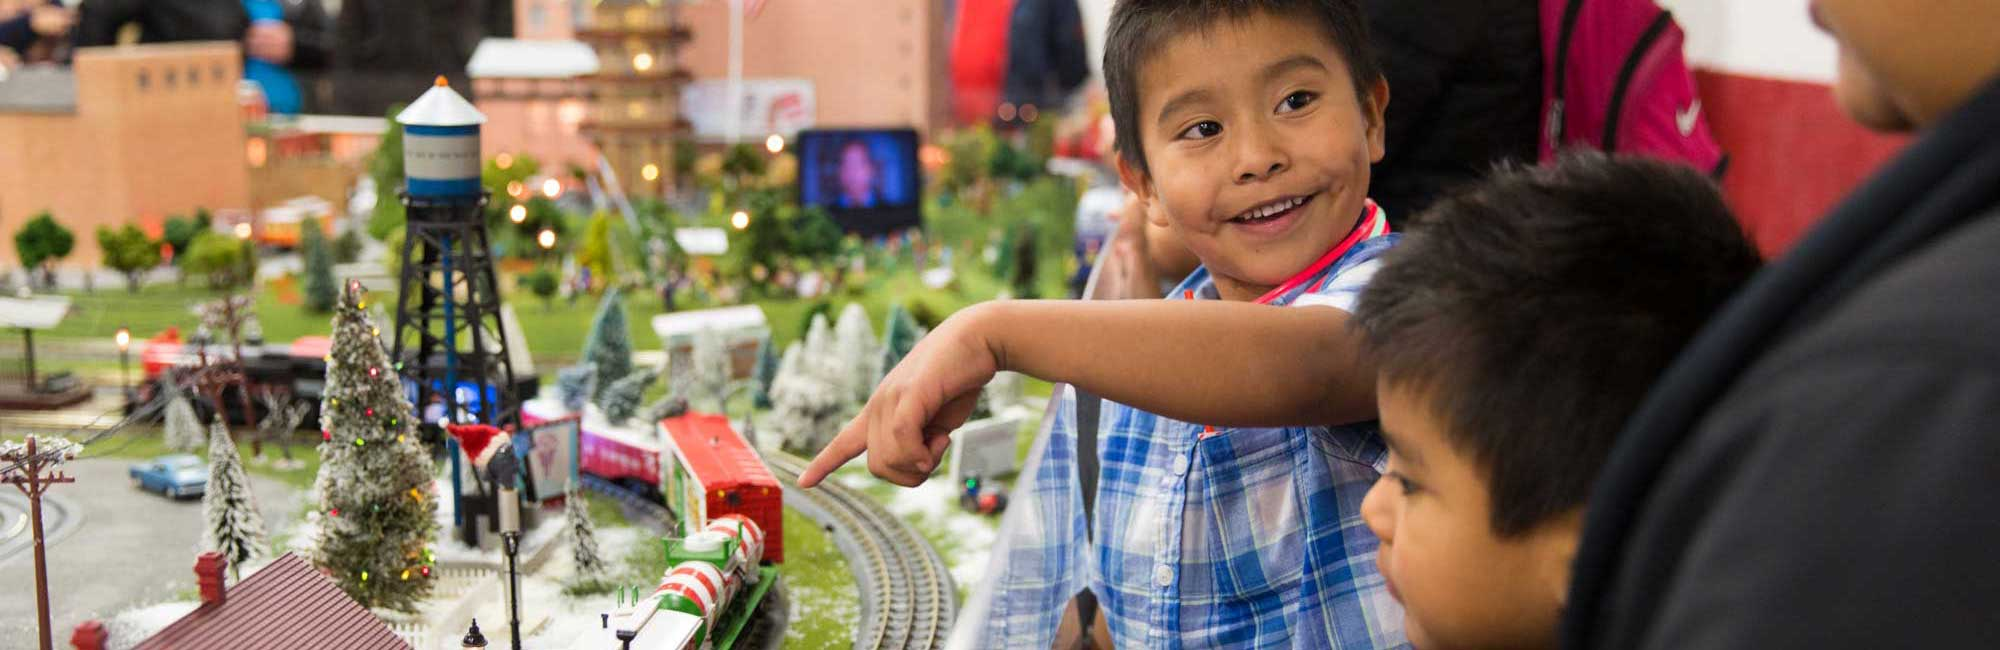 happy child pointing at train garden